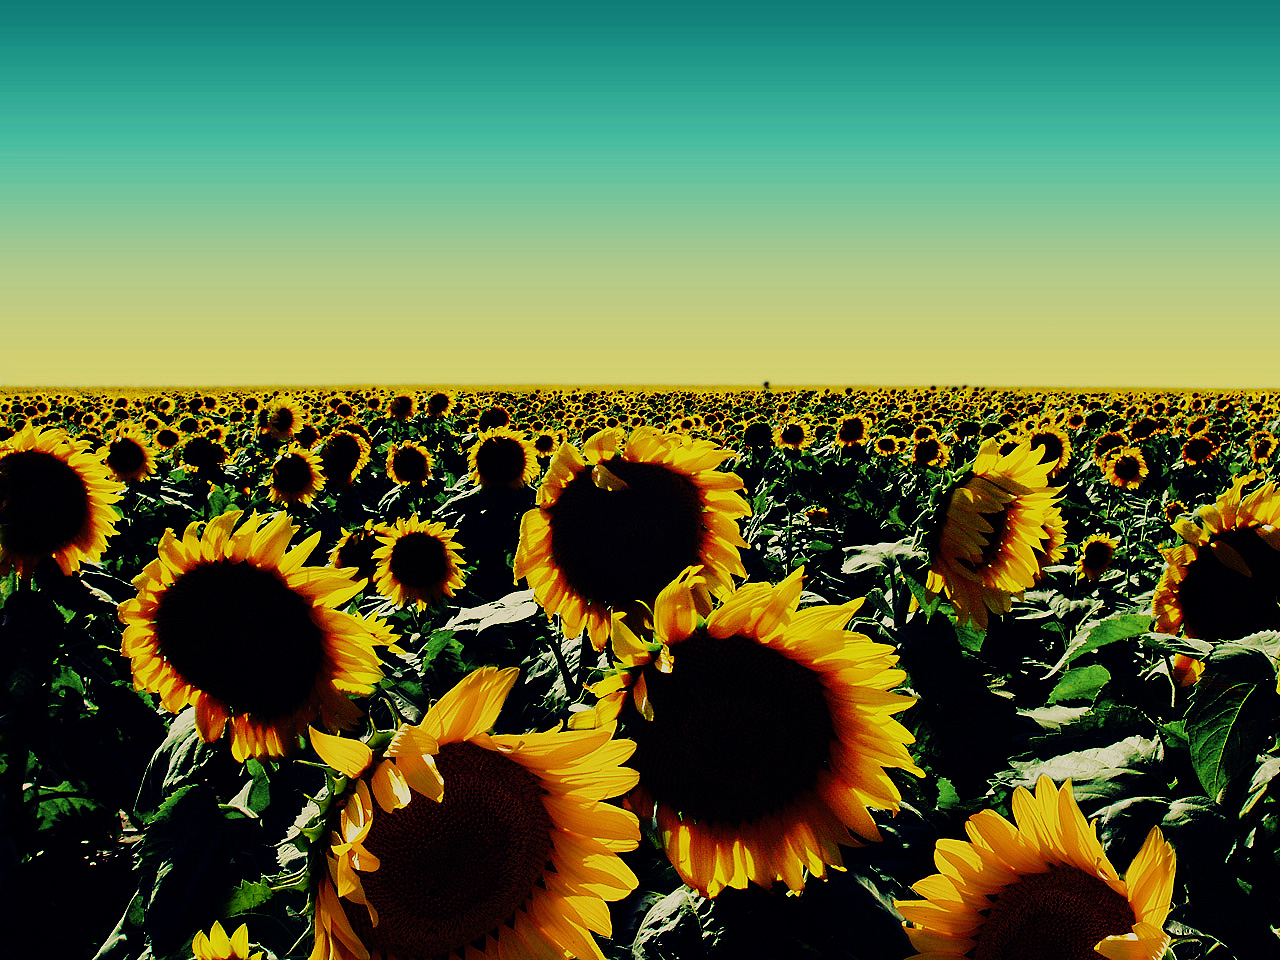 http://3.bp.blogspot.com/-B_A6sjCl8gk/Tb0APuqVU5I/AAAAAAAAIjM/W3irGbIRL8o/s1600/Sunflower+Wallpaper+by+free+wallpapers+%252814%2529.jpg